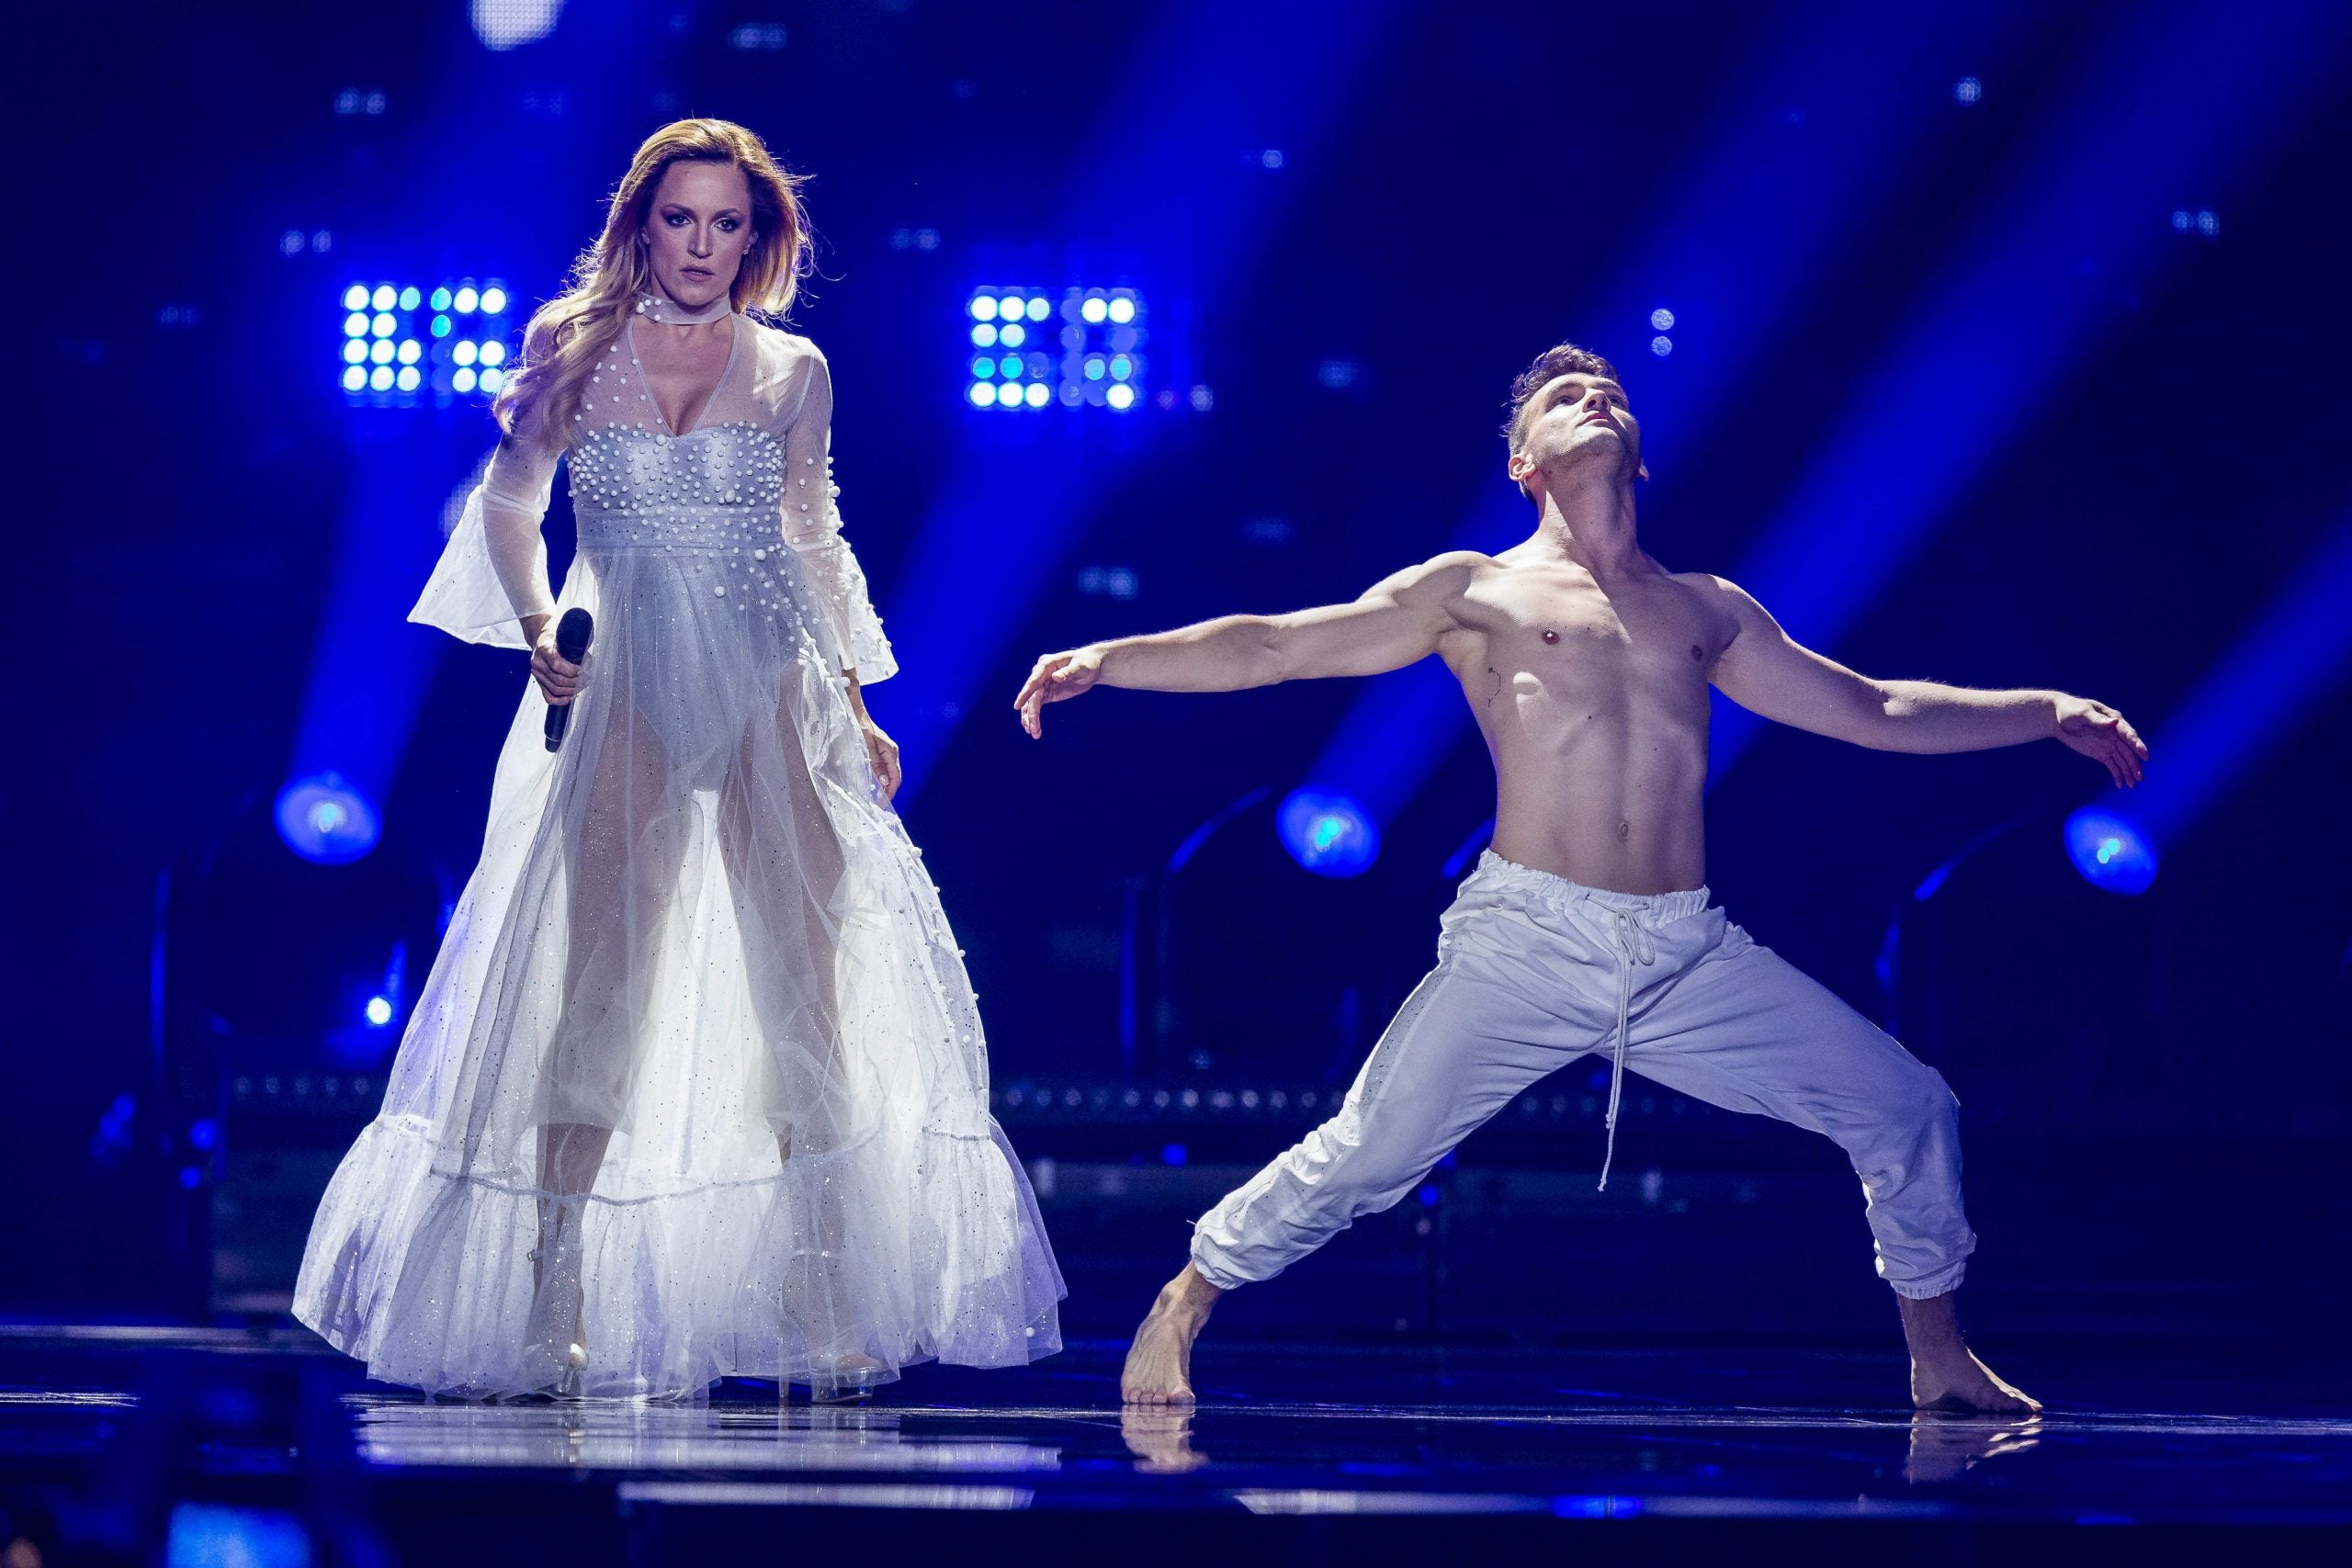 Will other Eurovision countries punish Britain for Brexit?